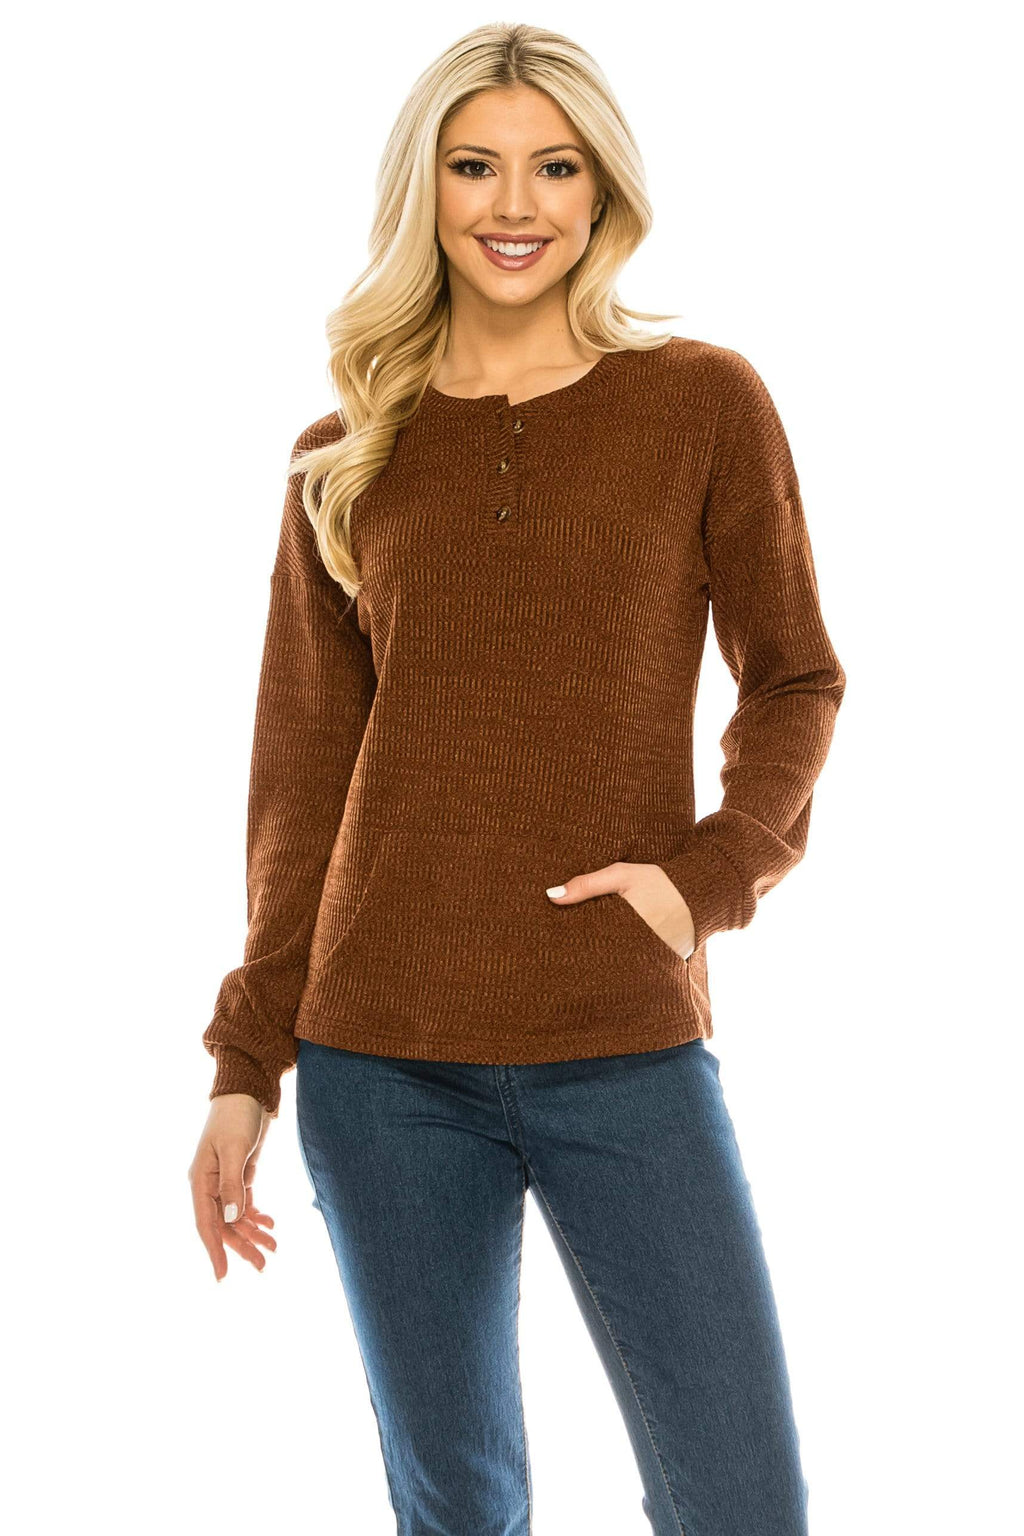 Haute Edition WOMEN'S TOP BRICK / S Haute Edition Women's Rib Kit Henley Top with Front Pocket